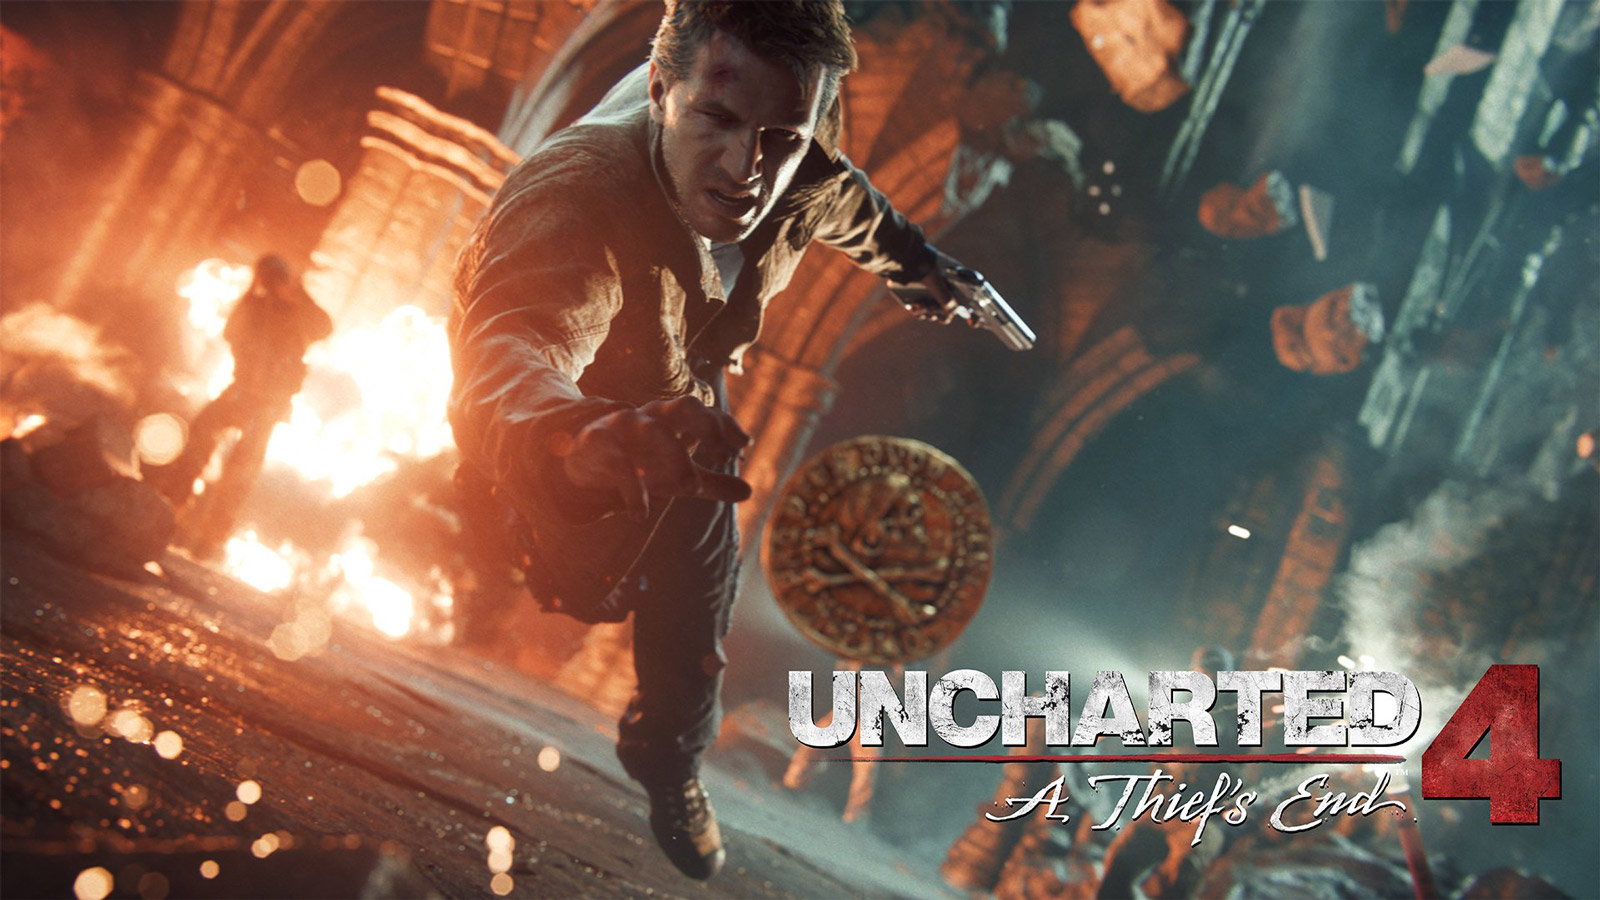 Free Uncharted 4: A Thief's End Wallpaper in 1600x900